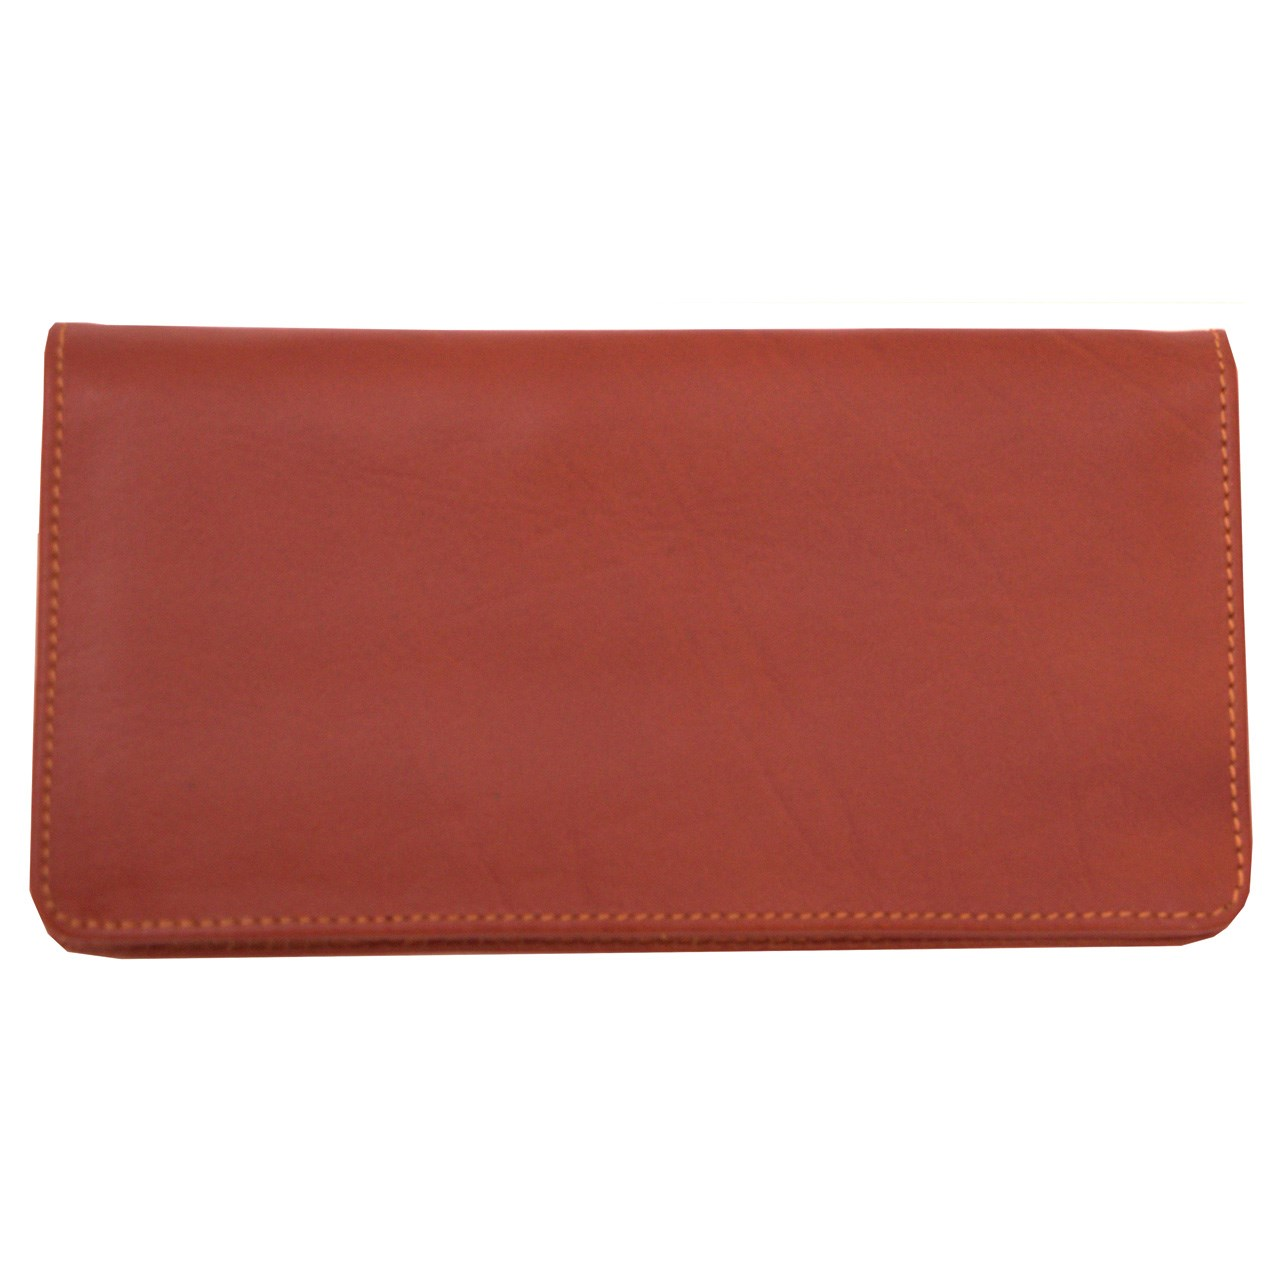 ADINCHARM natural leather wallet, DM63 Model